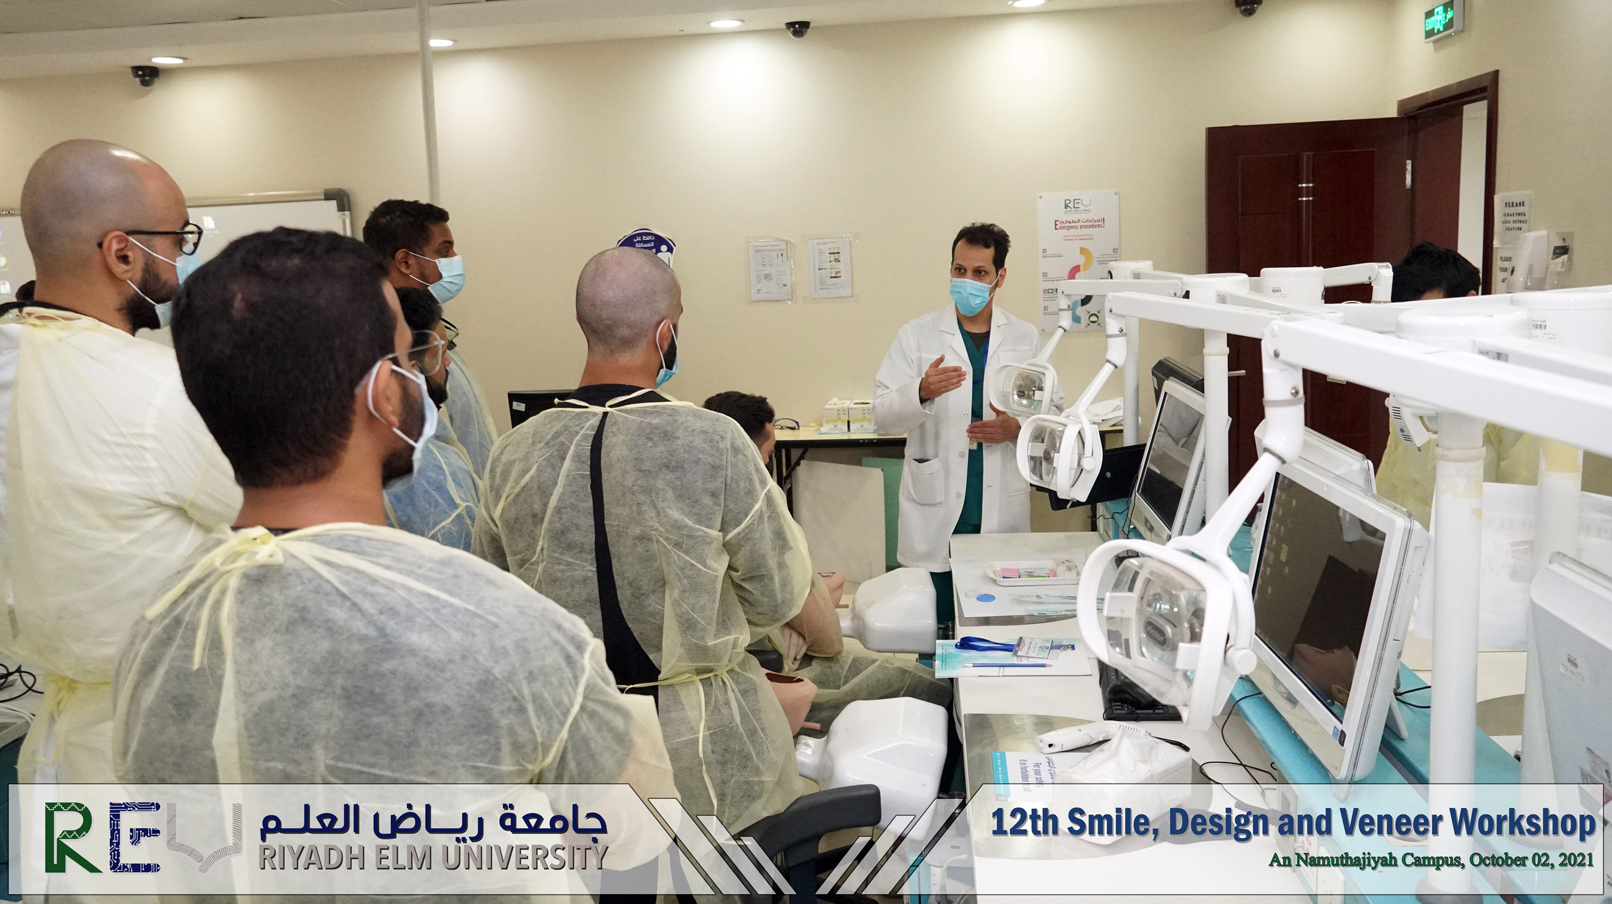 12th Smile, Design and Veneers for Dentistry